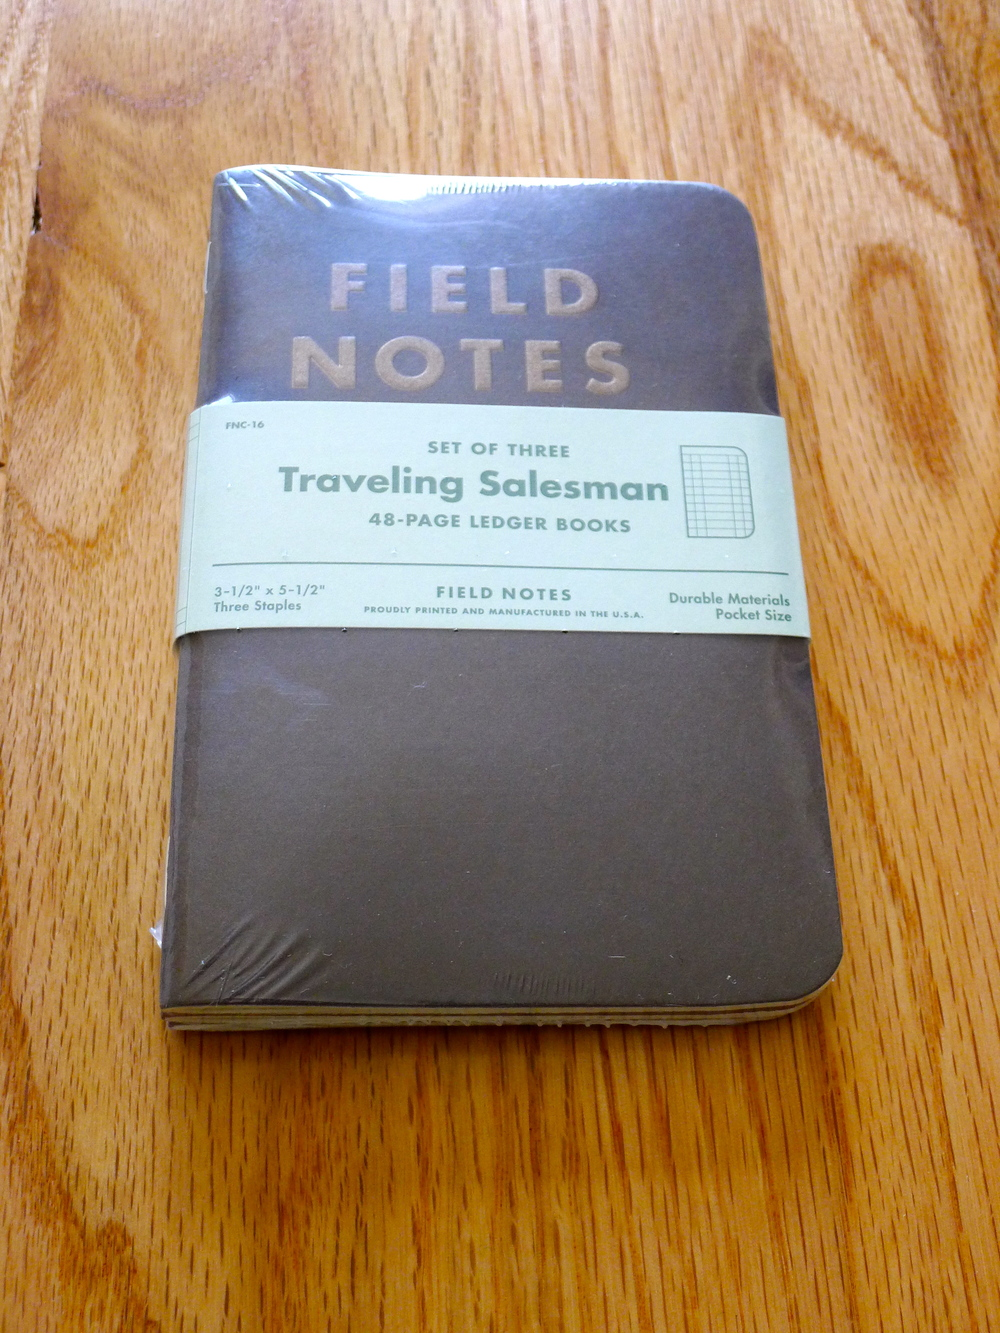 Field Notes Travelling Salesman Edition - Fall 2012